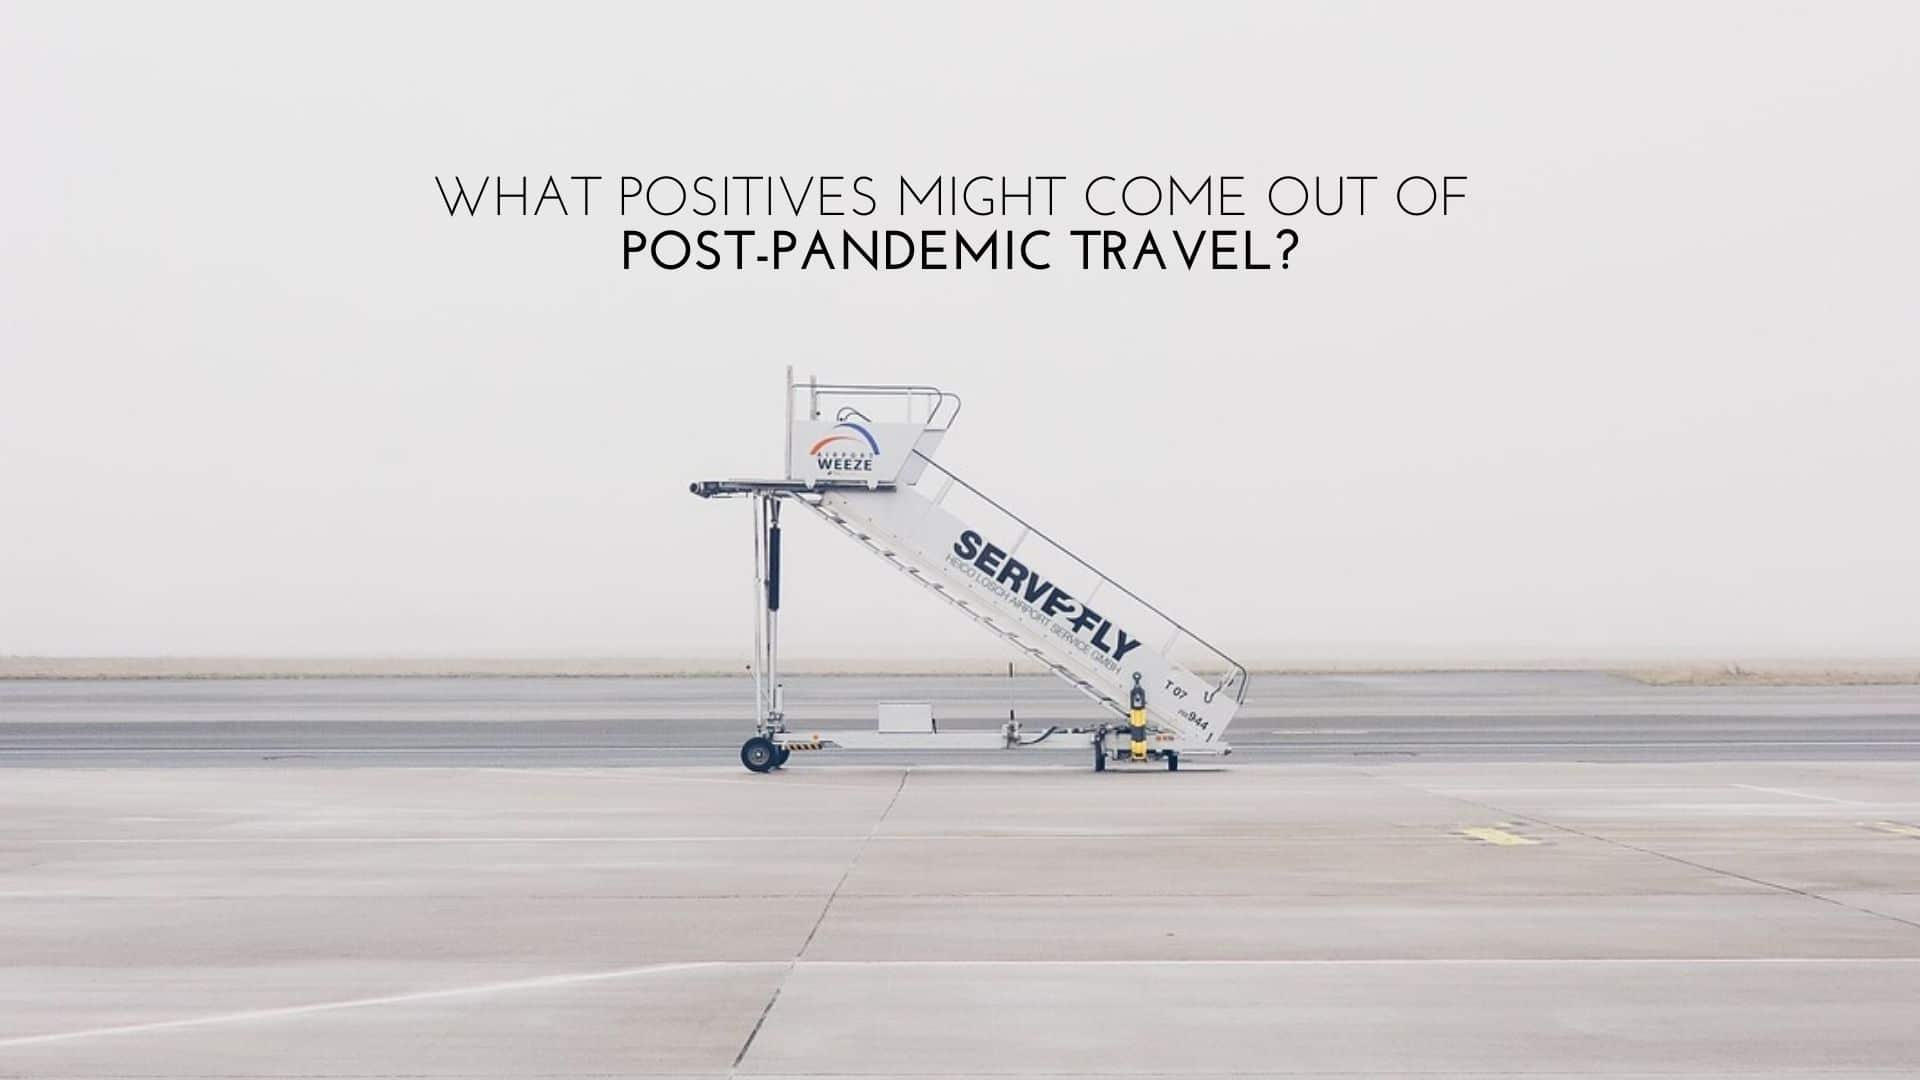 Looking on The Bright Side - What Positives Might Come out of Post-Pandemic Travel